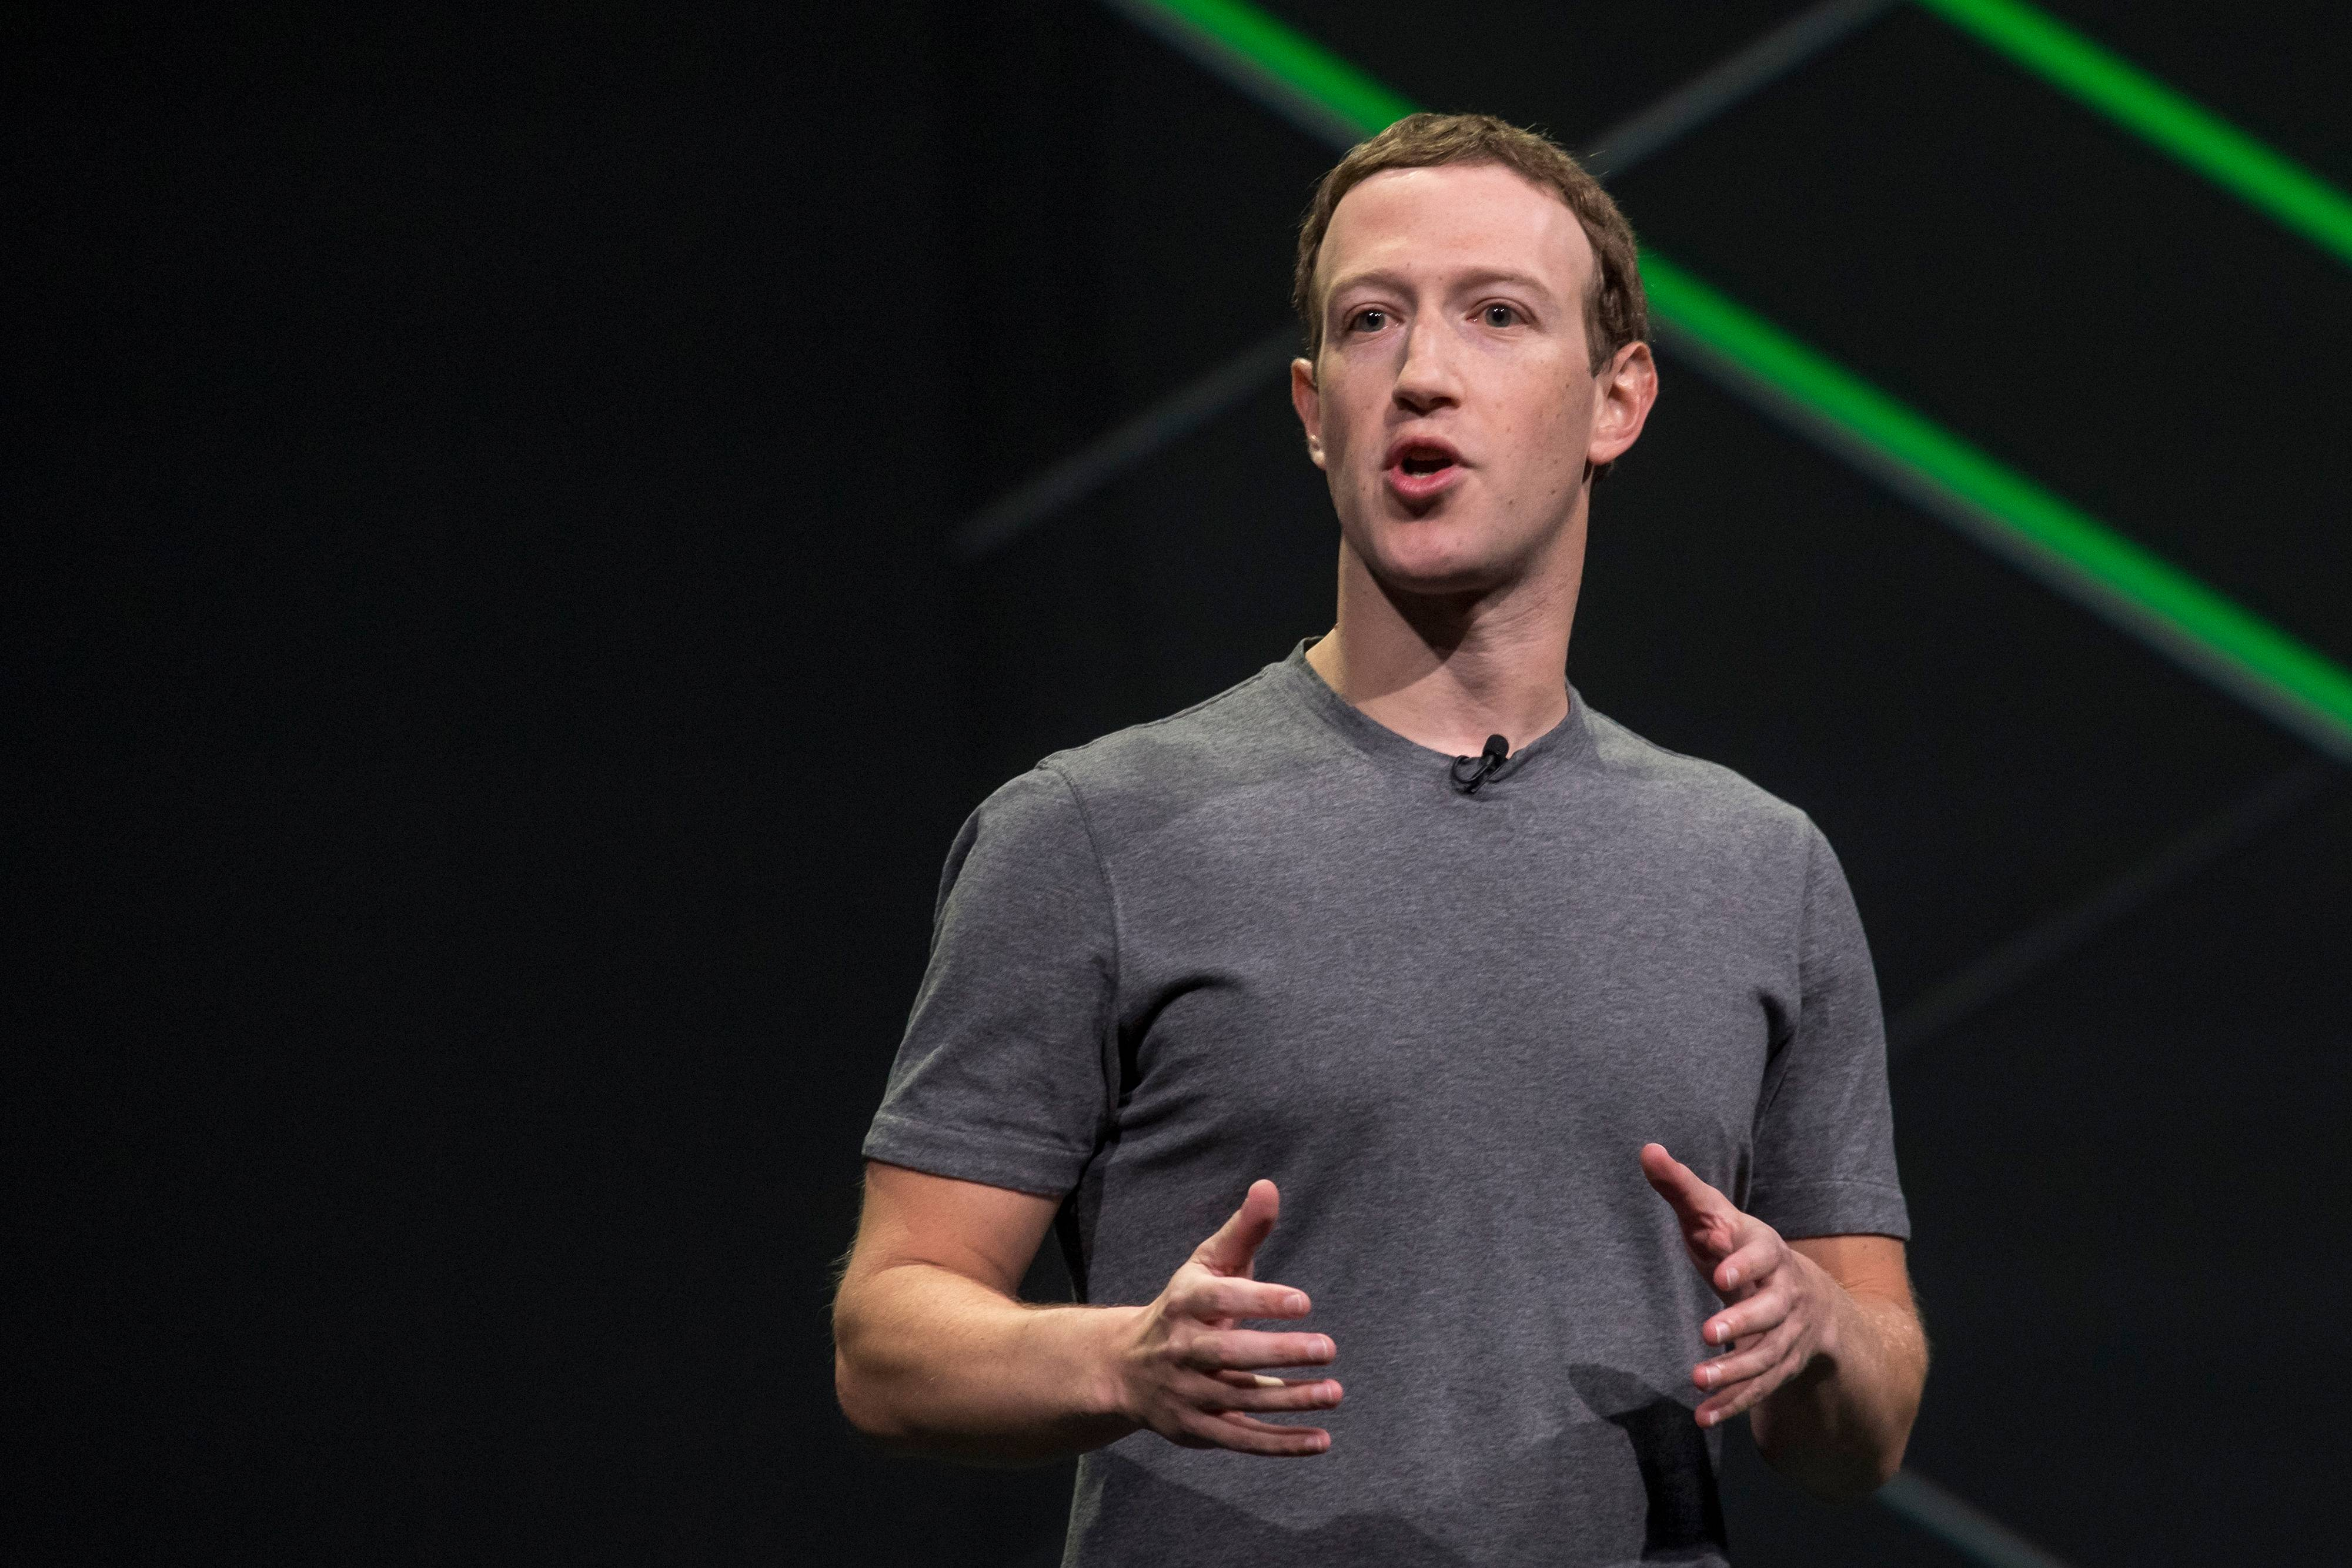 Facebook CEO Mark Zuckerberg speaks during the Oculus Connect 4 product launch event in San Jose, California, in 2017.